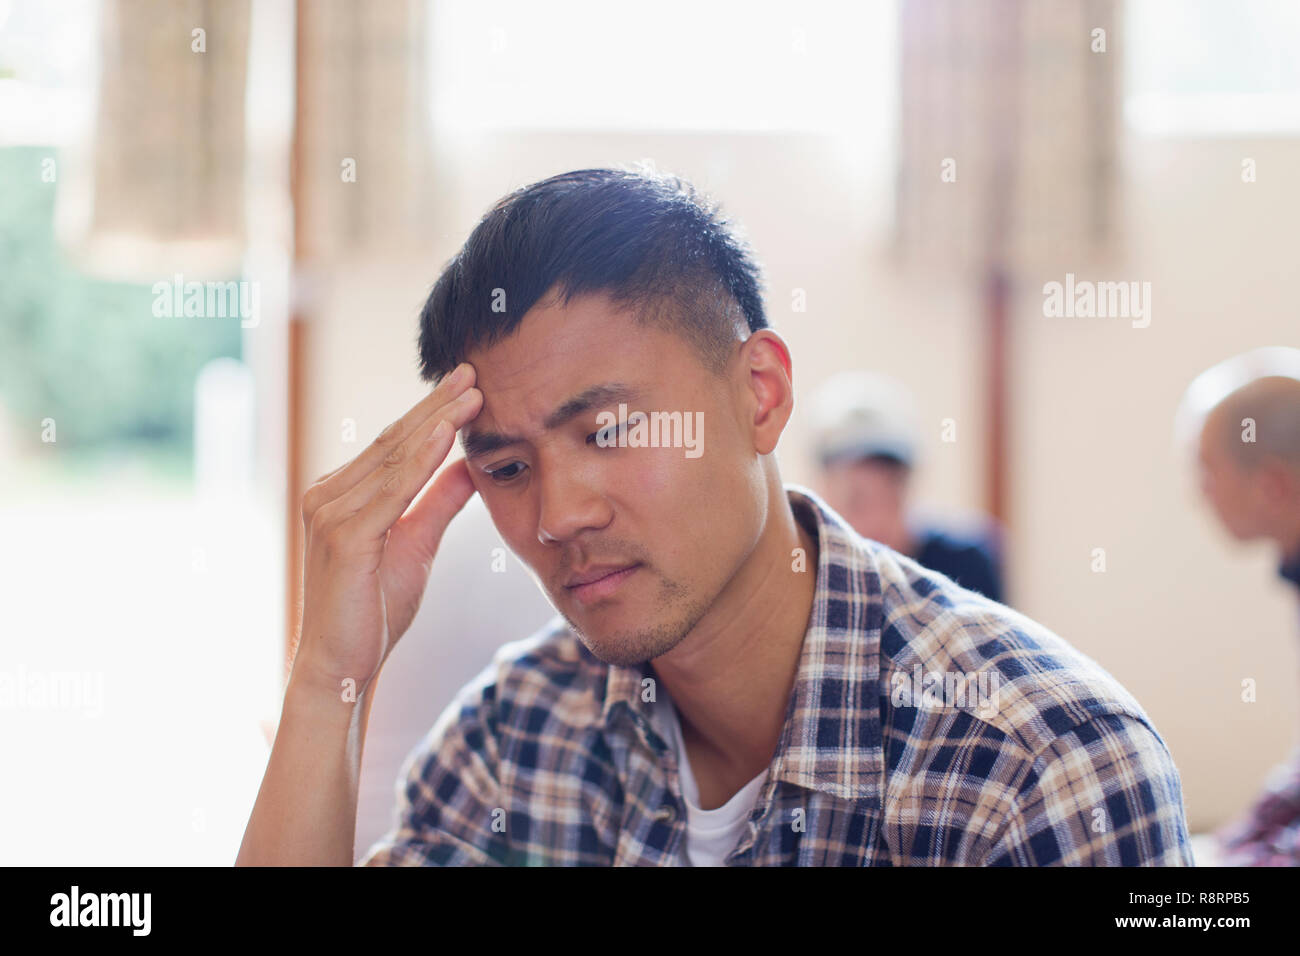 Frustrated man with head in hands - Stock Image